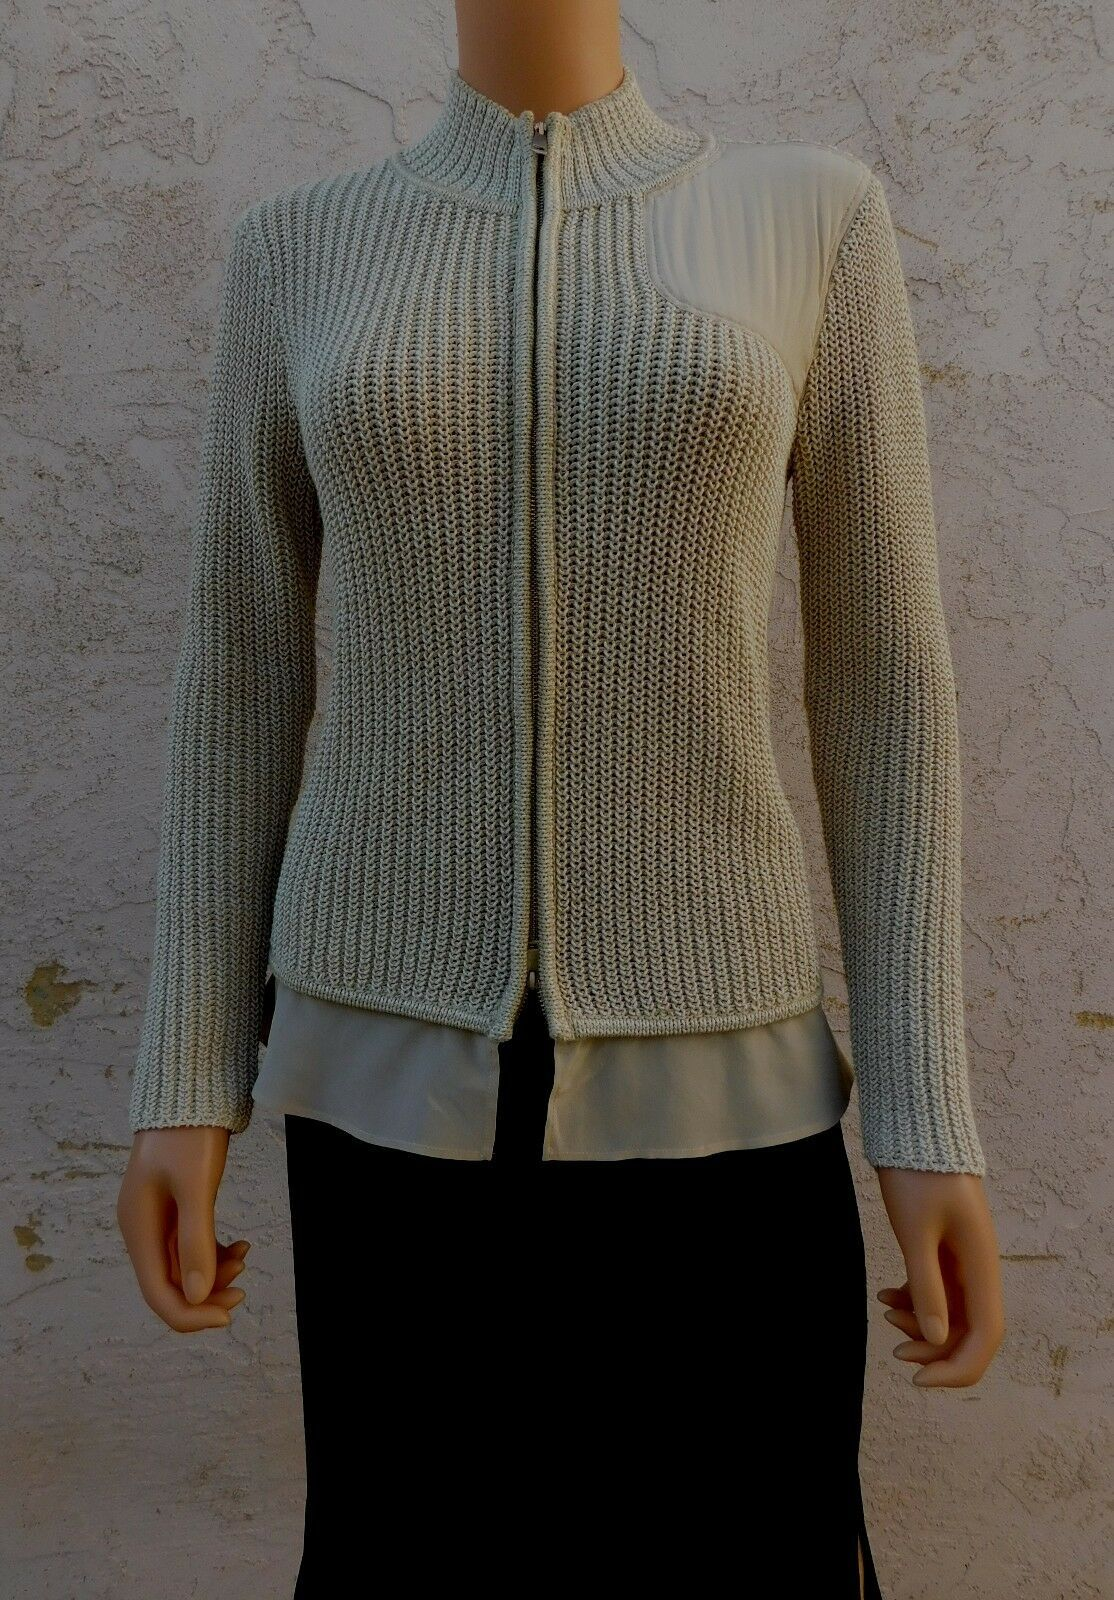 ST.JOHN Cardigan Sweater Beige Cotton Wool Silk Metallic sz P S M - $165.00